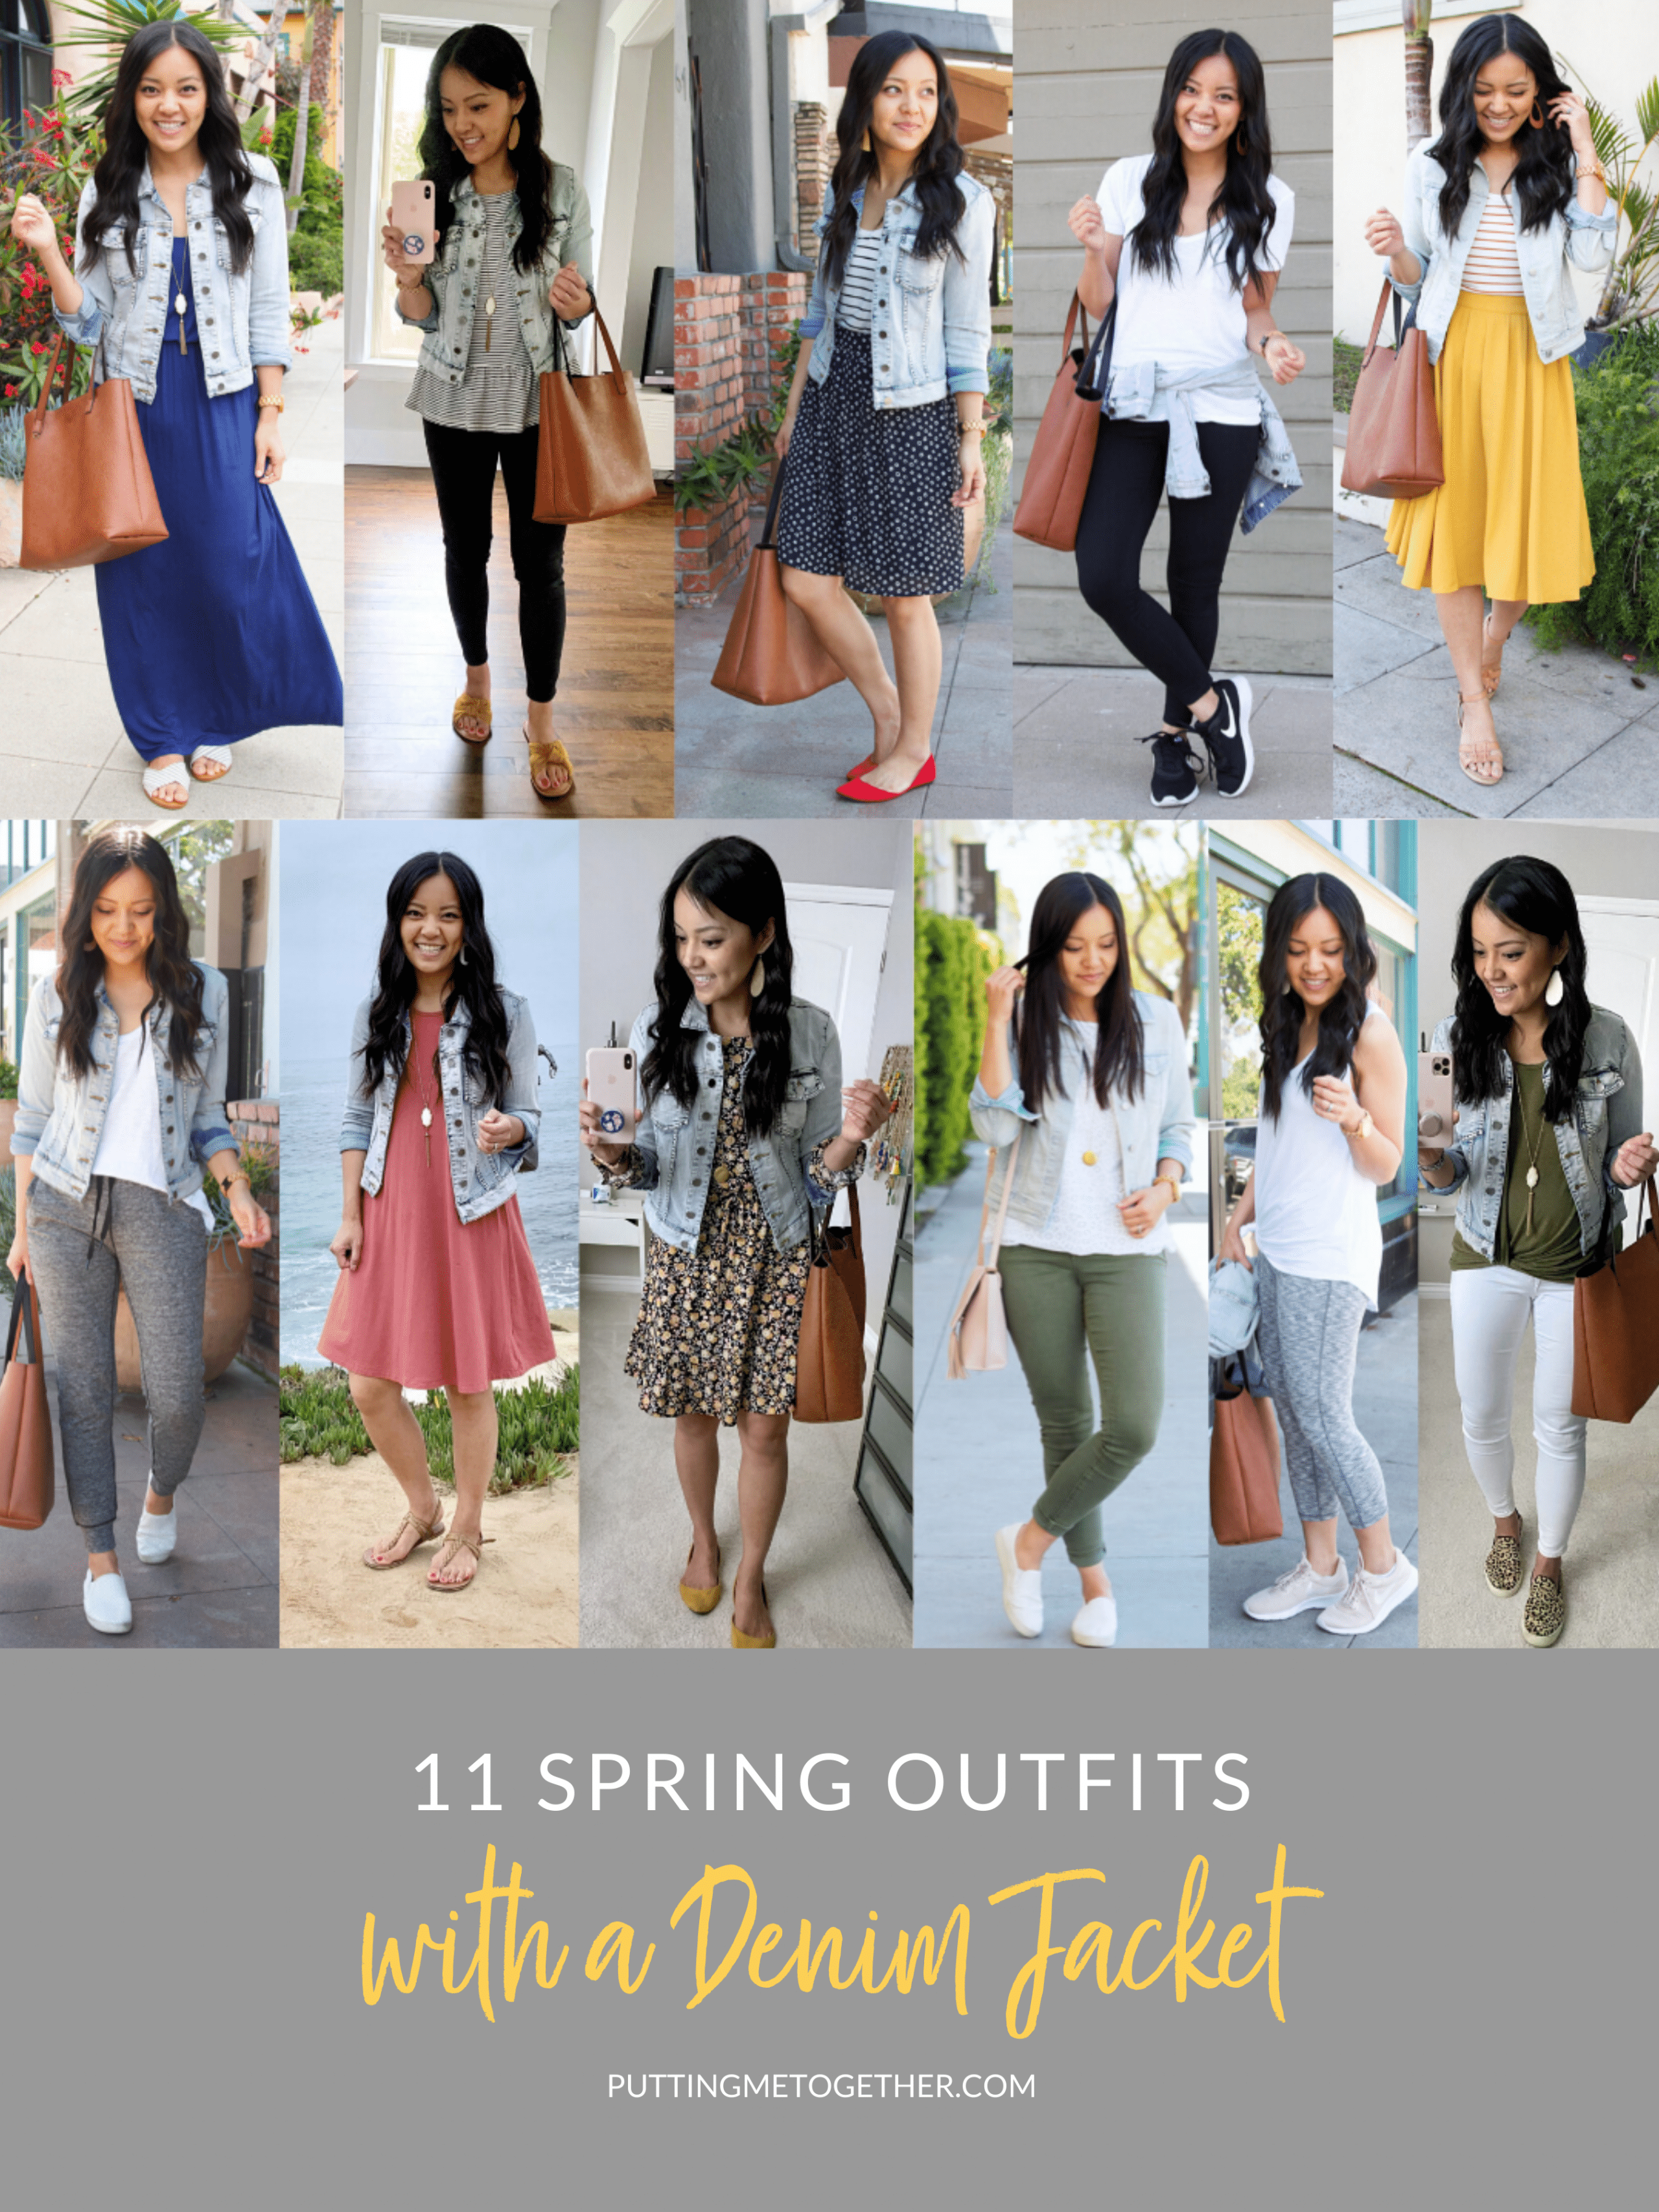 11 Spring Outfits with a Denim Jacket